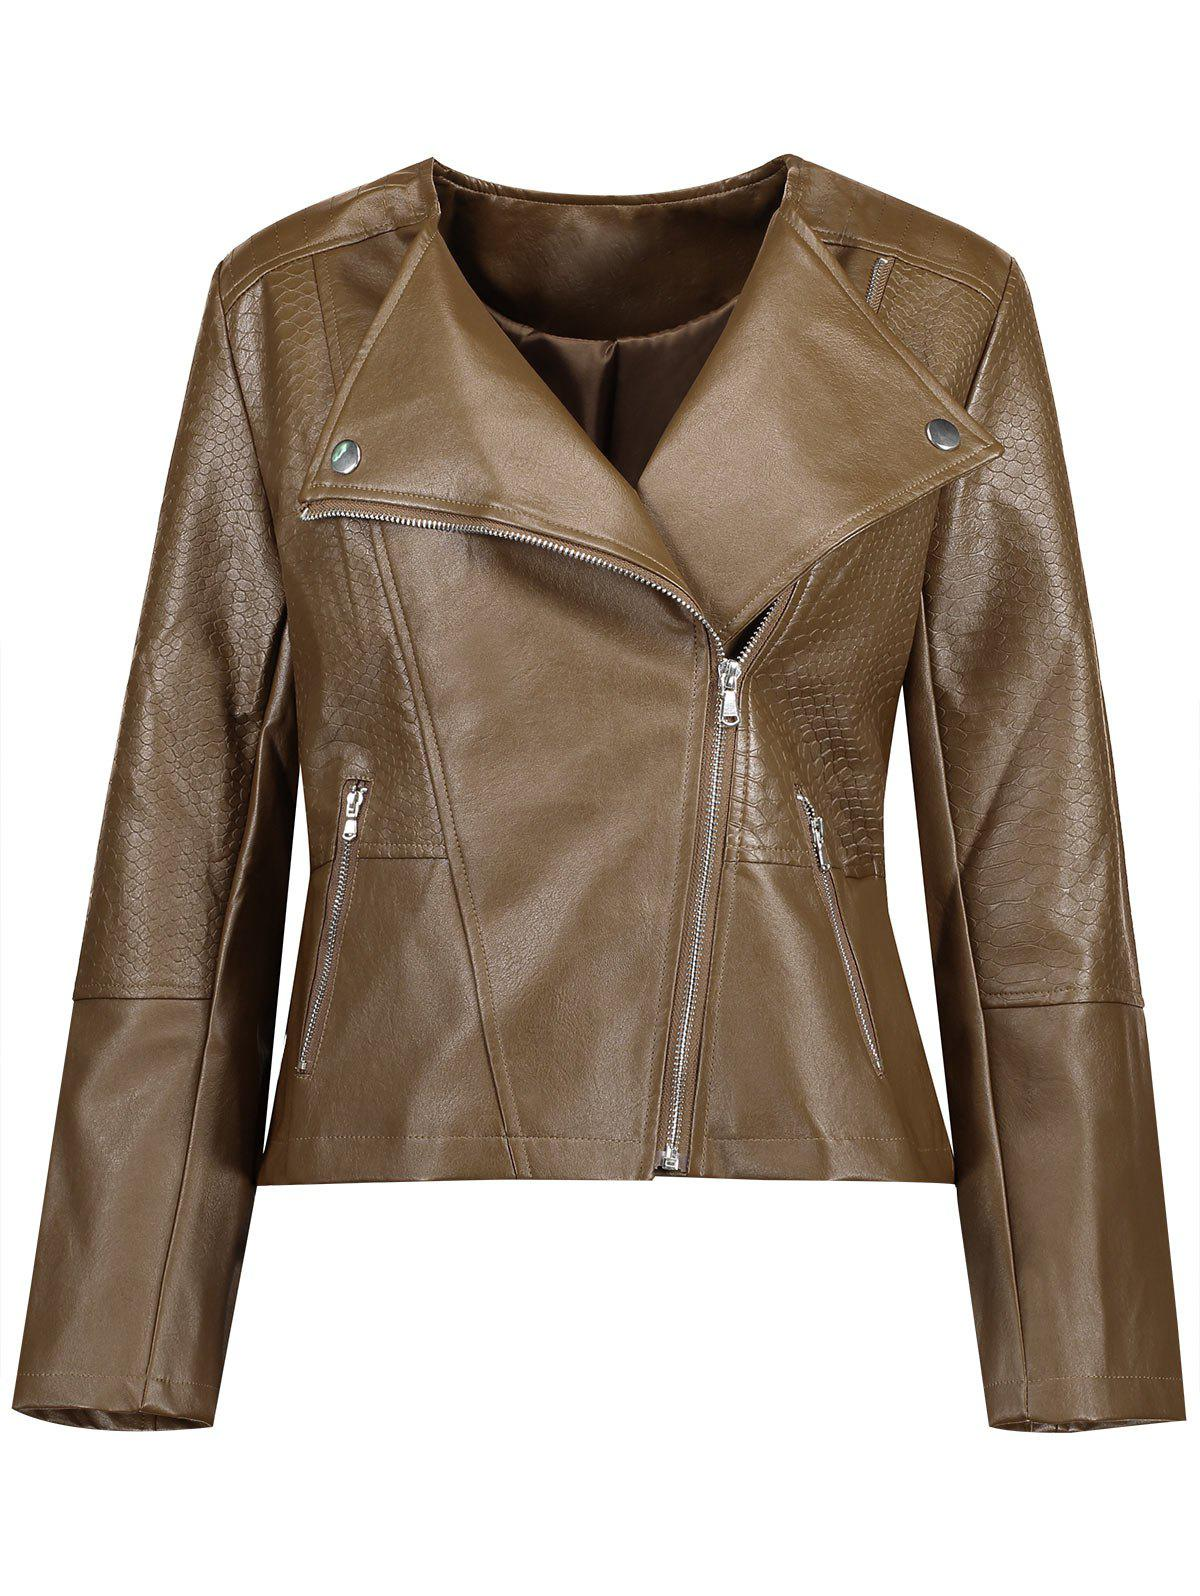 Plus Size Inclined Zipper Faux Leather Biker JacketWOMEN<br><br>Size: 5XL; Color: DARK CAMEL; Clothes Type: Jackets; Material: Cotton,Polyester; Type: Slim; Shirt Length: Regular; Sleeve Length: Full; Collar: Lapel; Pattern Type: Solid; Embellishment: Rivet; Style: Punk; Season: Fall,Spring; With Belt: No; Weight: 0.5850kg; Package Contents: 1 x Jacket;